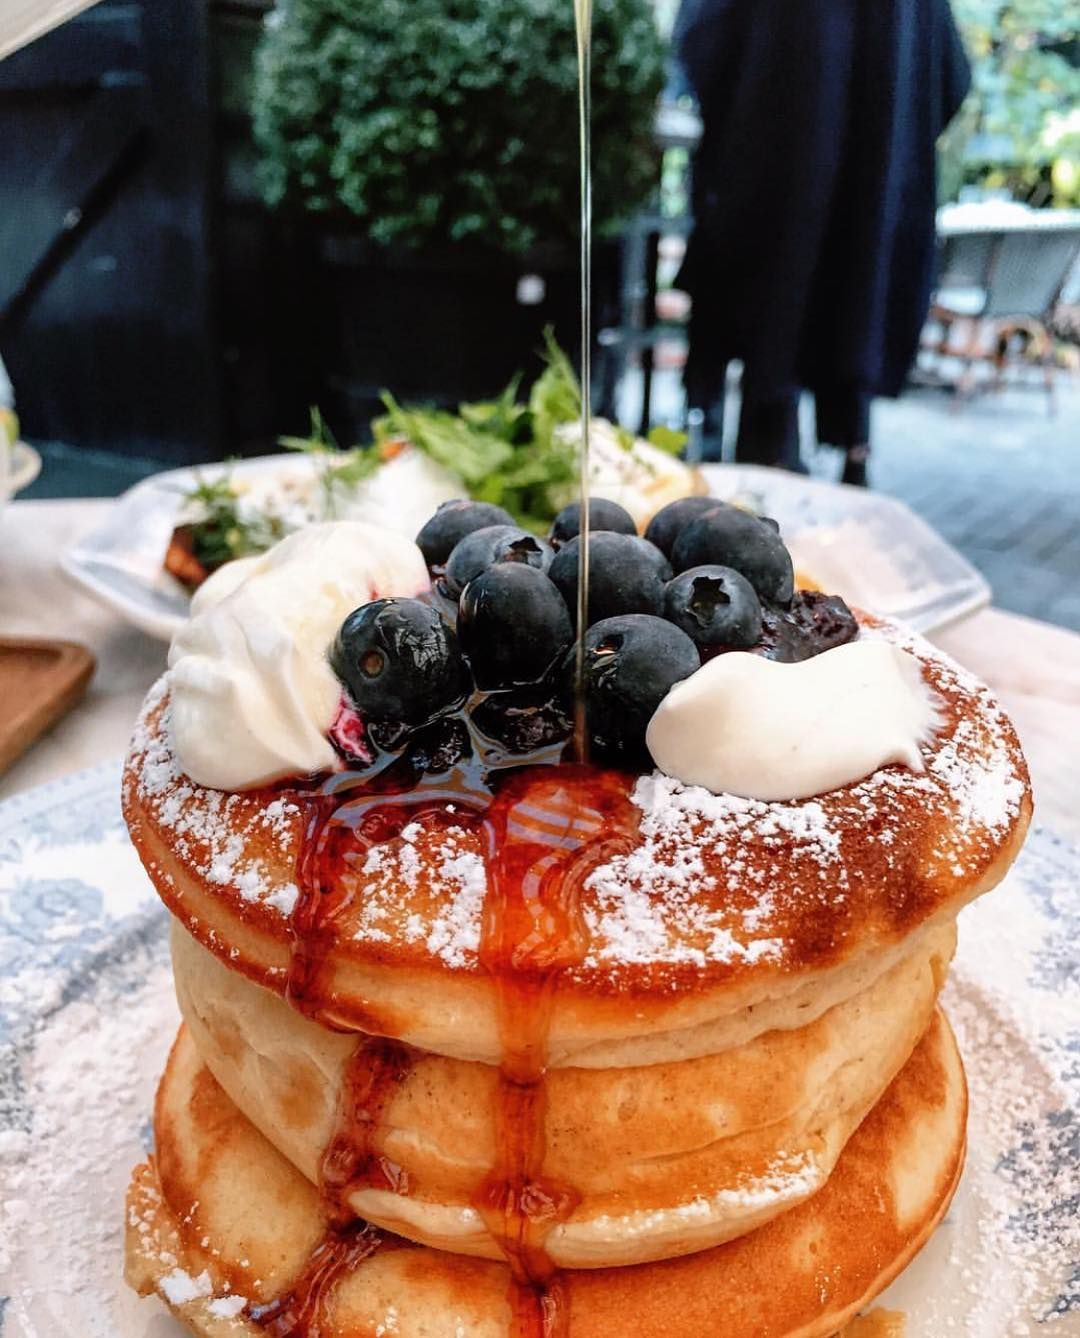 「chiltern firehouse pancakes」的圖片搜尋結果